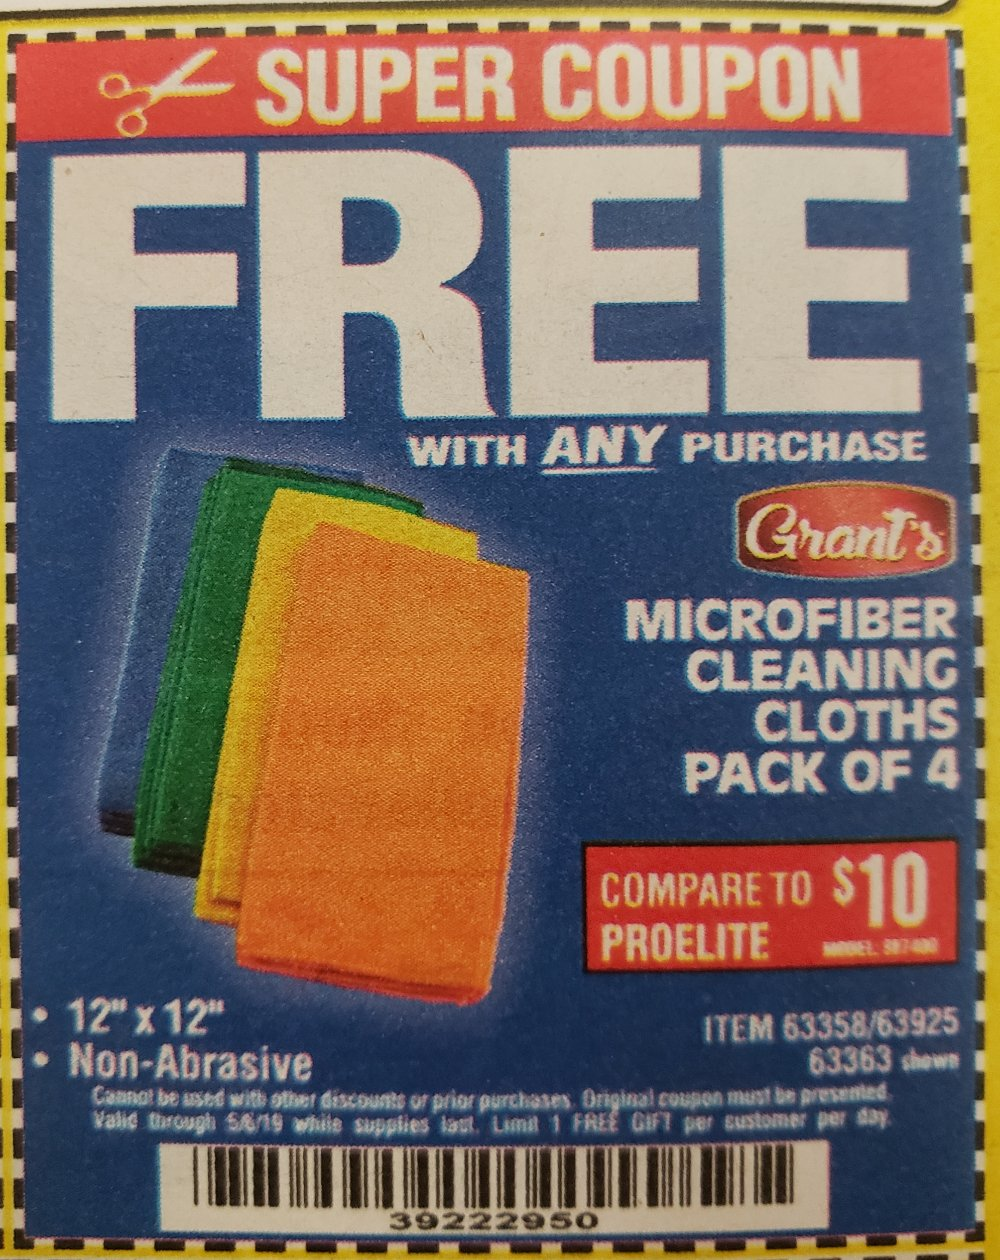 Harbor Freight Coupon, HF Coupons - FREE - Microfiber Cleaning Cloth 12x12 4 Pk.